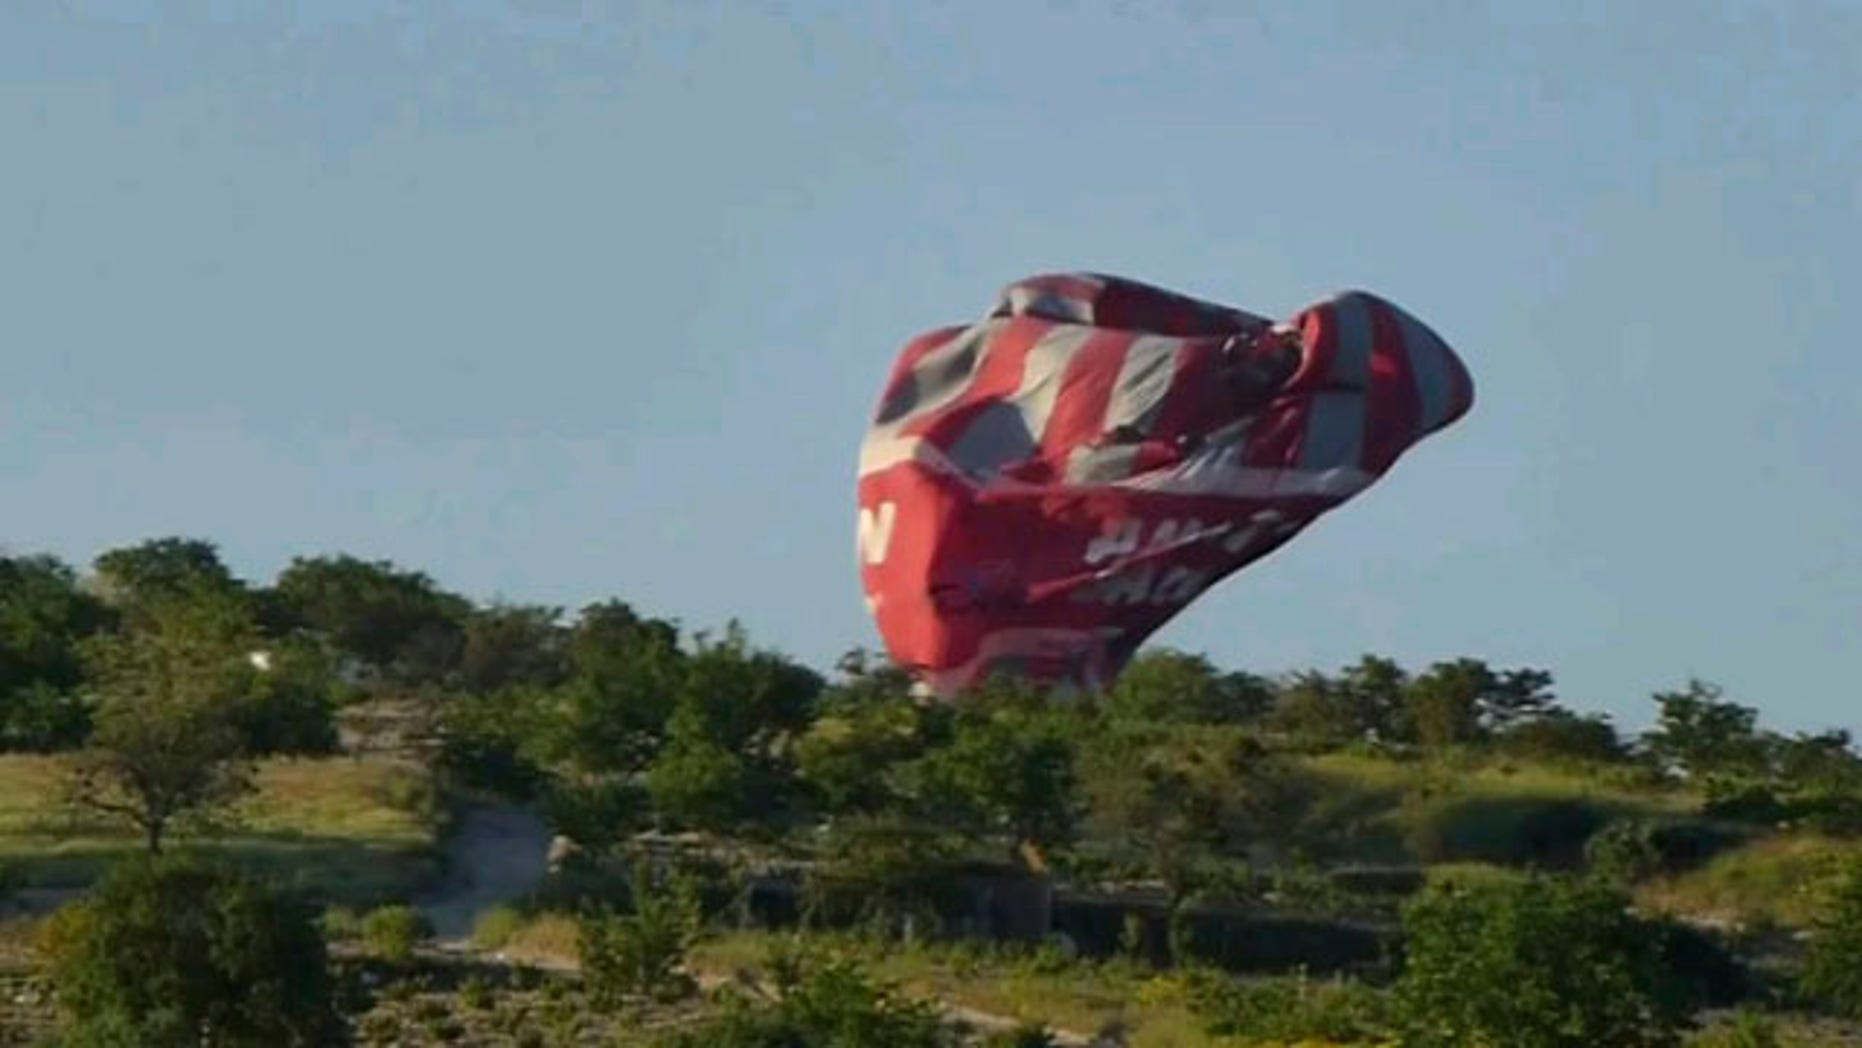 May 20 2013: This image from video provided by E. Wayne Ross shows an Anatolian Balloons Company hot air balloon crashing near Göreme National Park and the Rock Sites of Cappadocia in central Turkey.